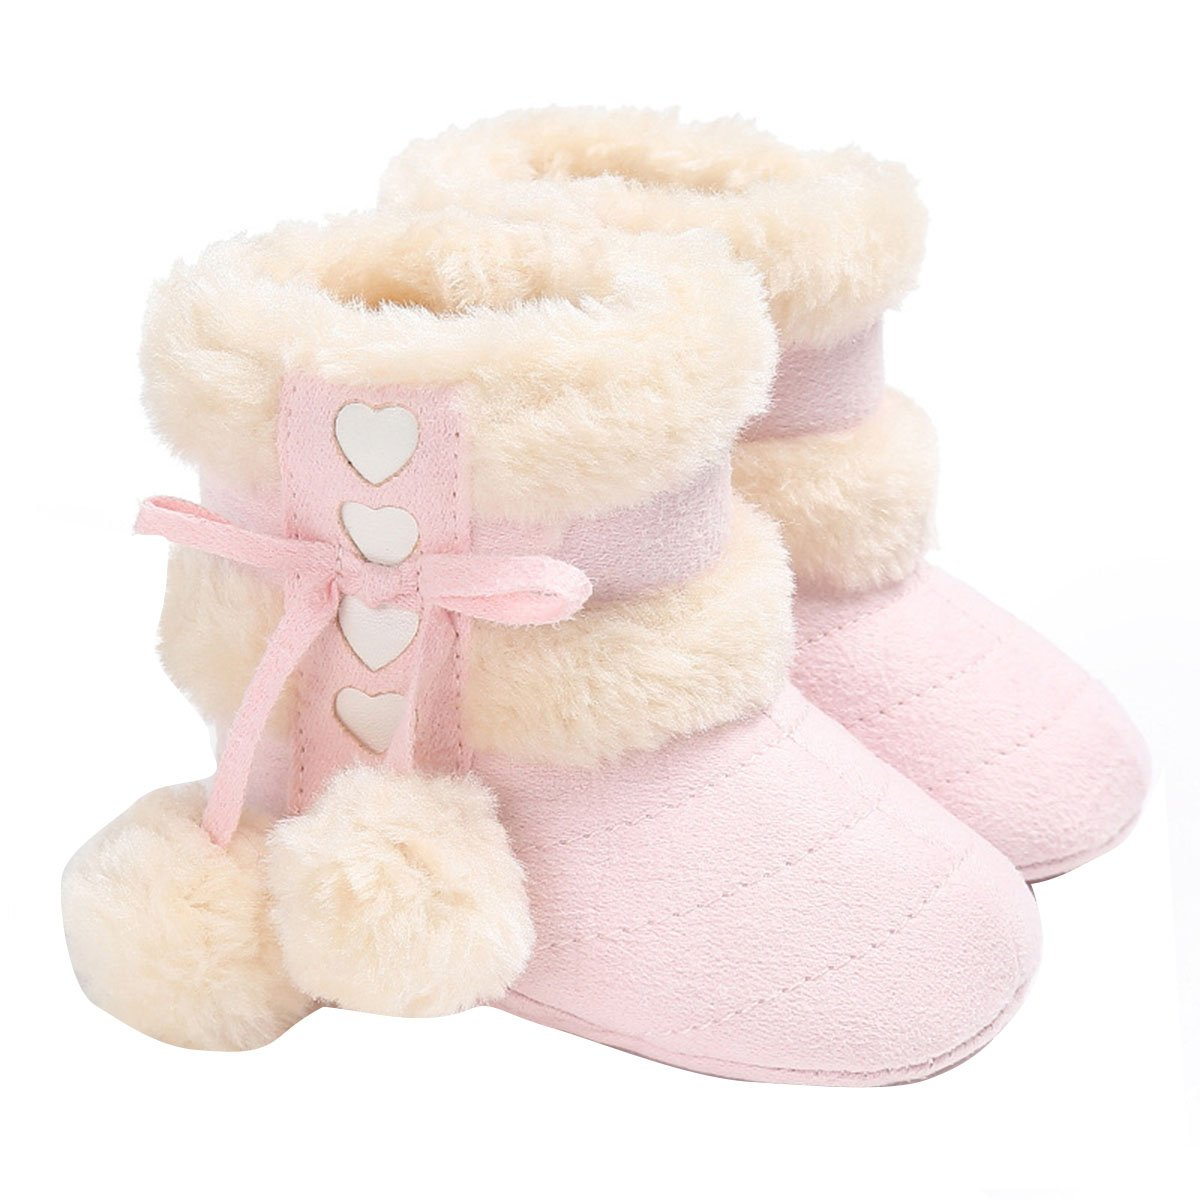 Butterme Baby Warm Soft Cotton Boots Anti-Slip Soles Cute Toddler Shoes for 0-18 Months Baby(12cm, Pink) ZUMUii ZUMU00005117